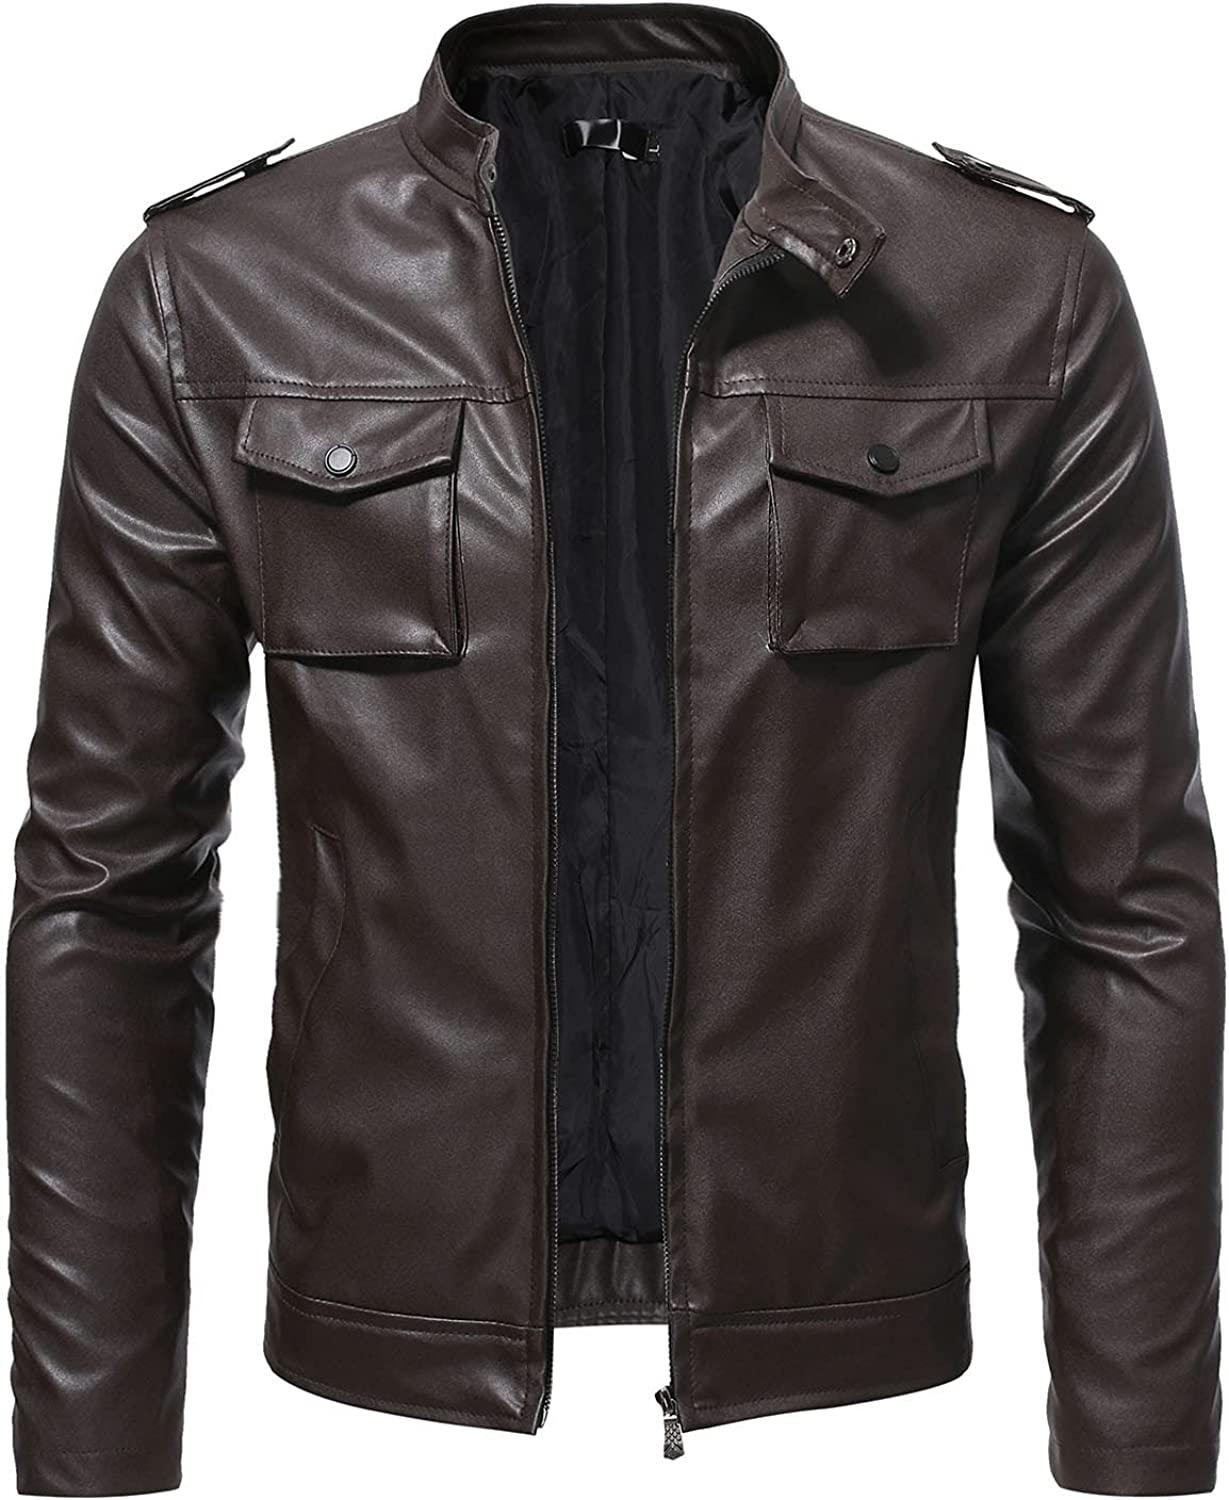 Men's Leather Outerwear Fashion Slim Leather Jackets Stand Collar Zipper Pocket Jacket Coat L-5XL